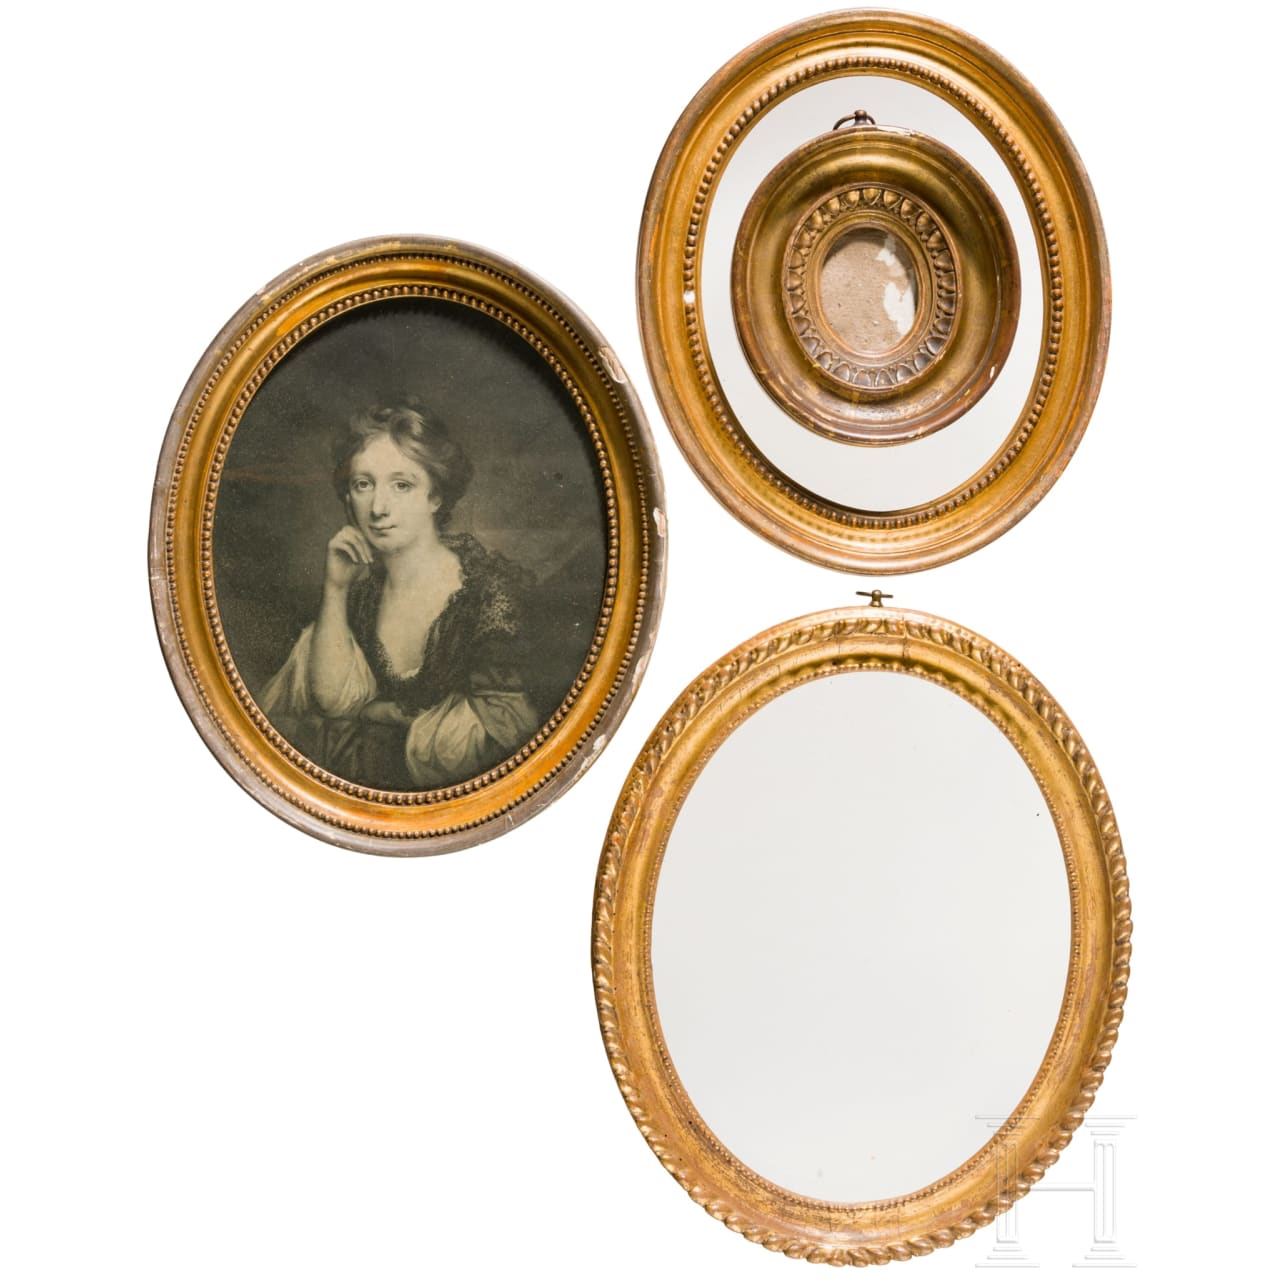 A set of four oval French neo-classical frames, 19th century